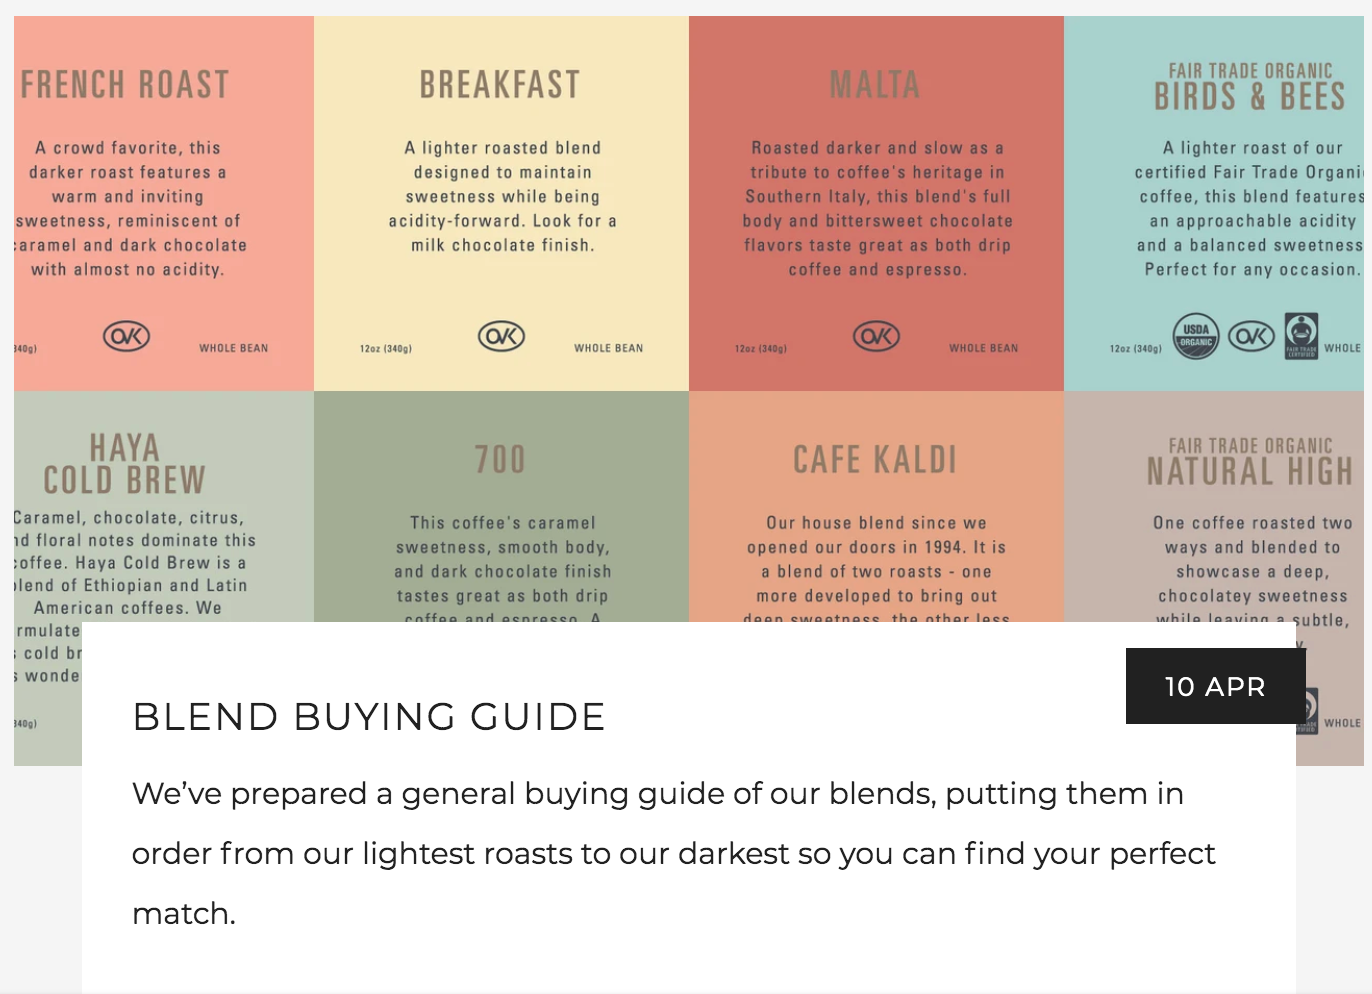 Kaldi's Coffee Blend Buying Guide - Which Coffee Blend Is Right For You?